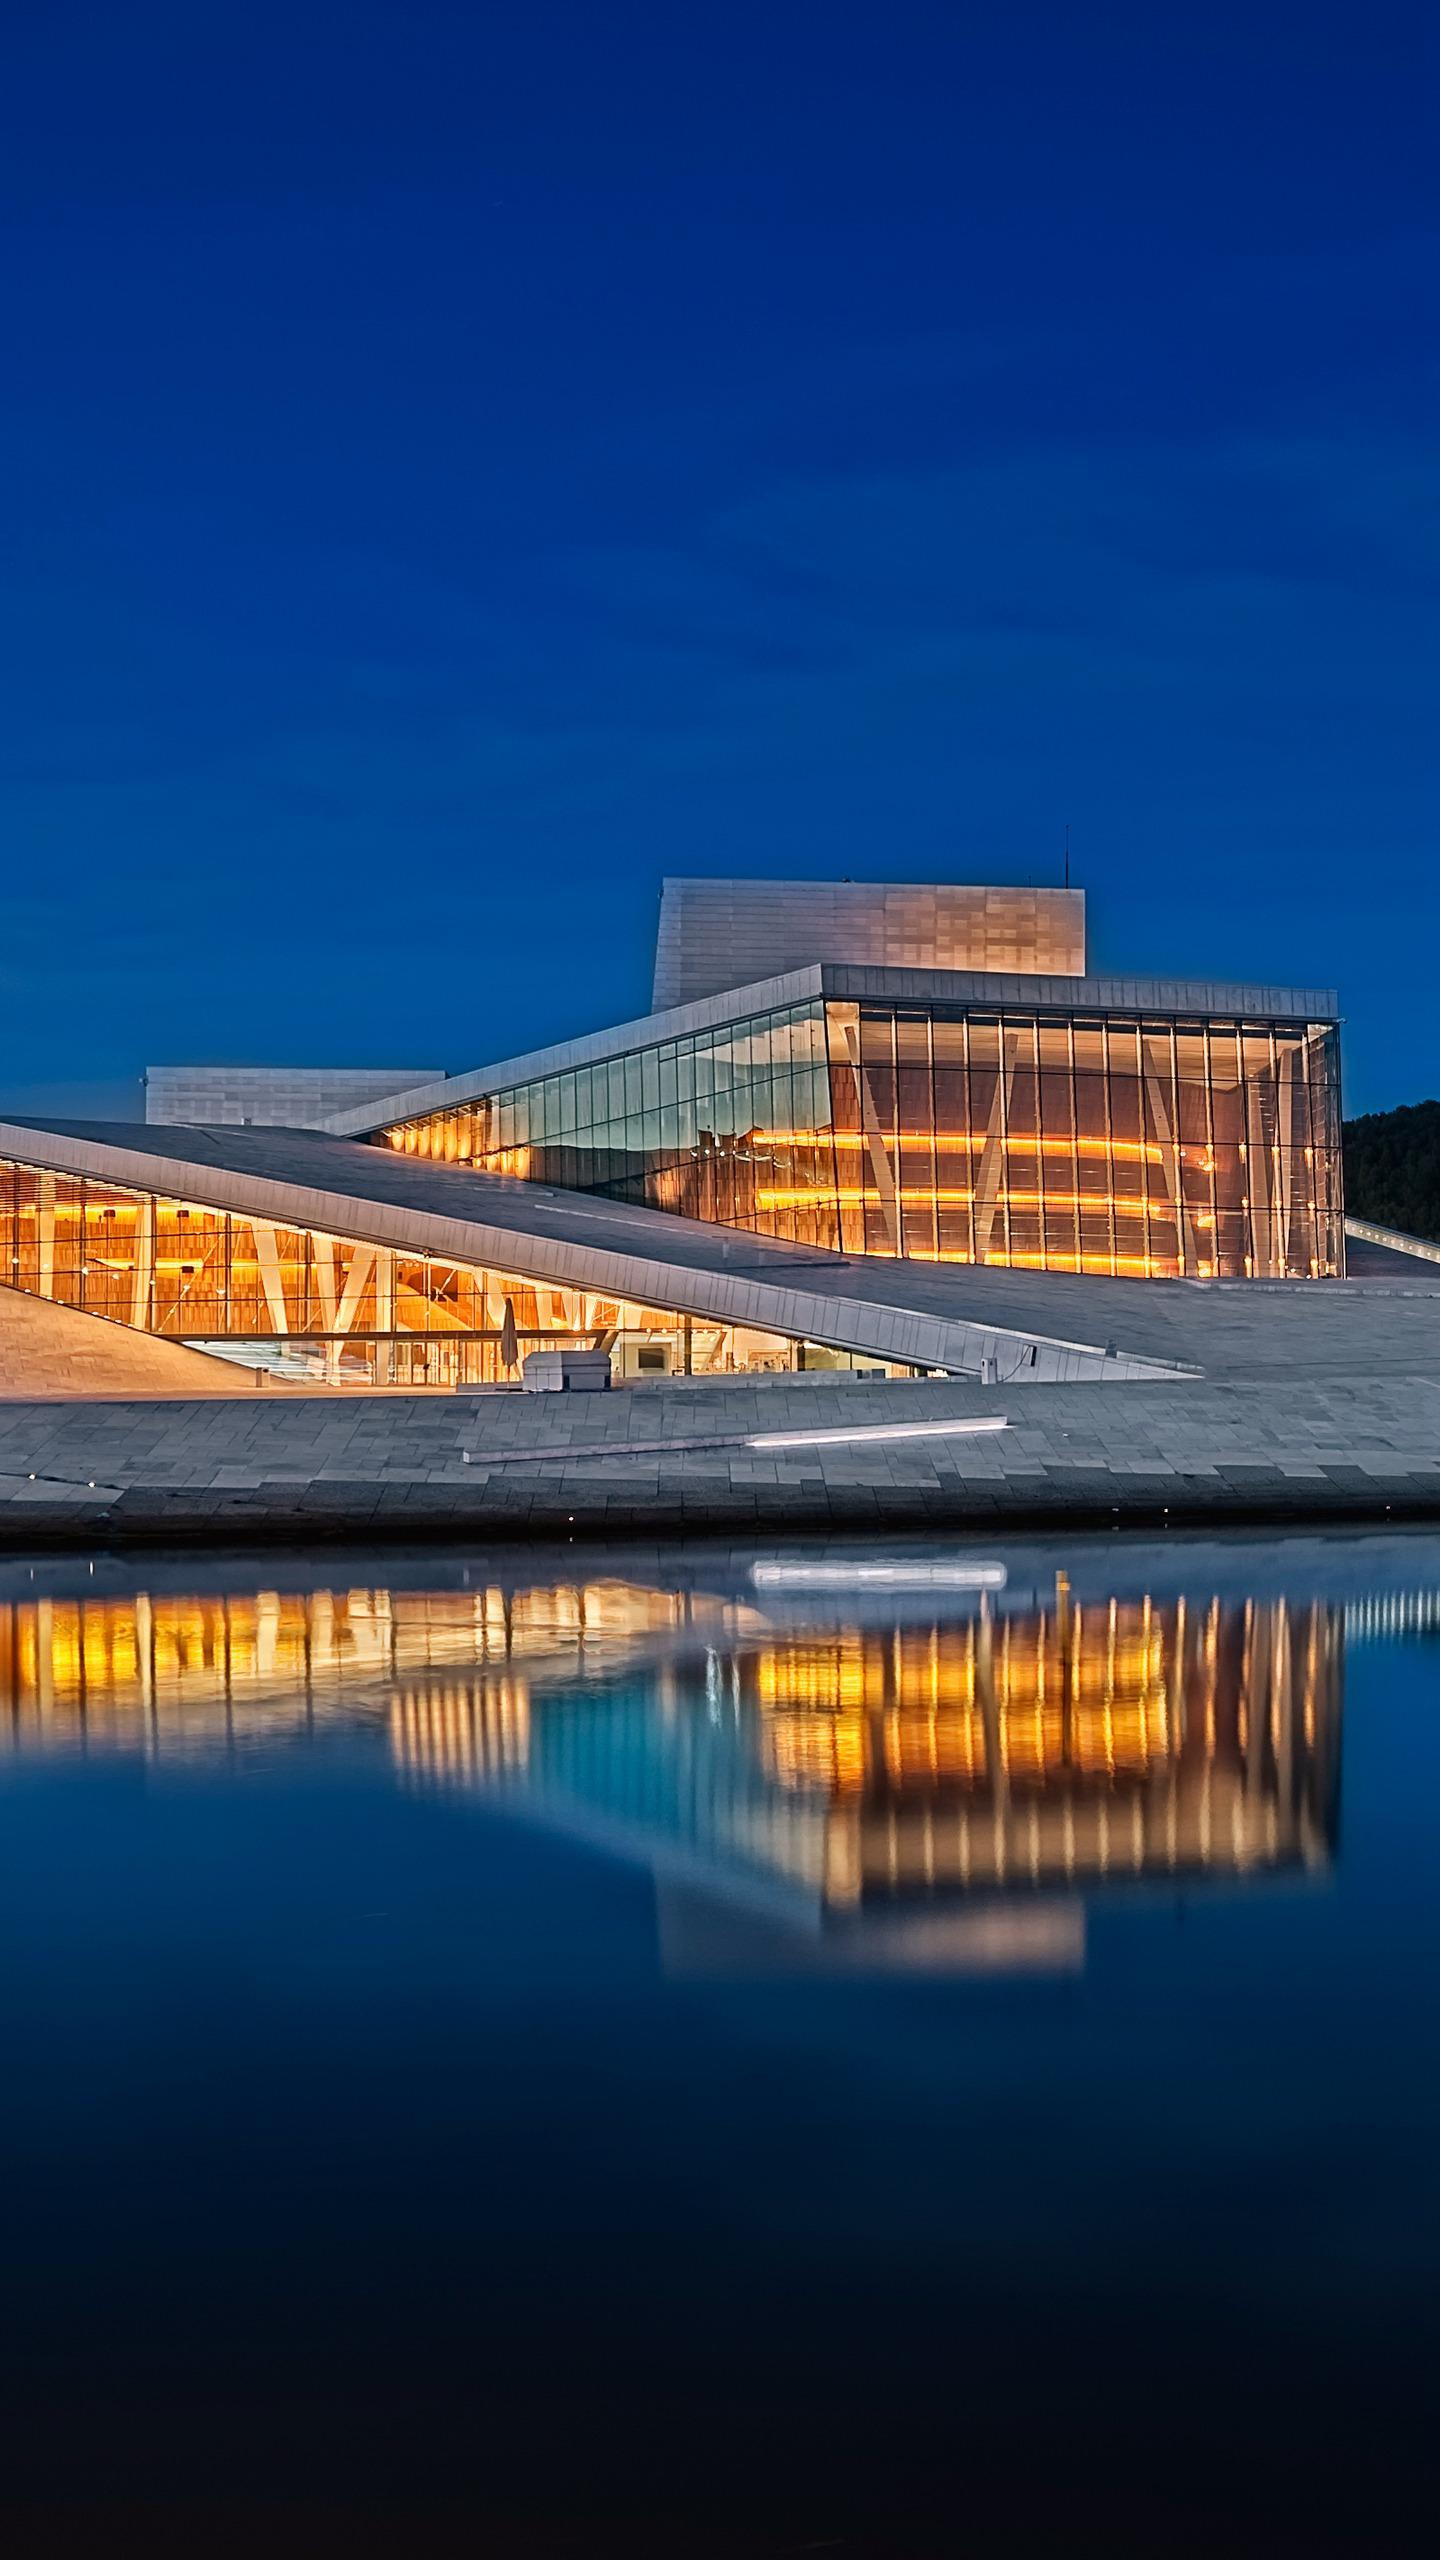 Norway - The Oslo Opera House is made of marble and glass. It looks like a boat, simple and modern in style, and magnificent.